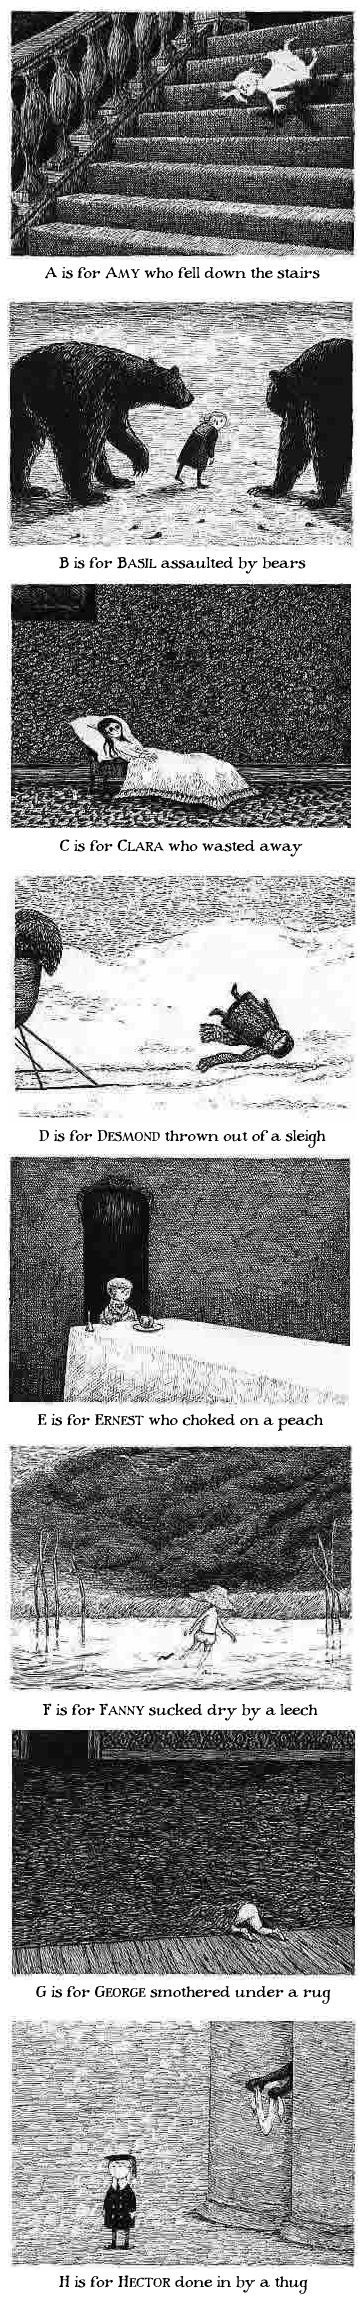 Edward Gorey The Gashlycrumb Tinies. This has echoes of The Rakes Song by The…